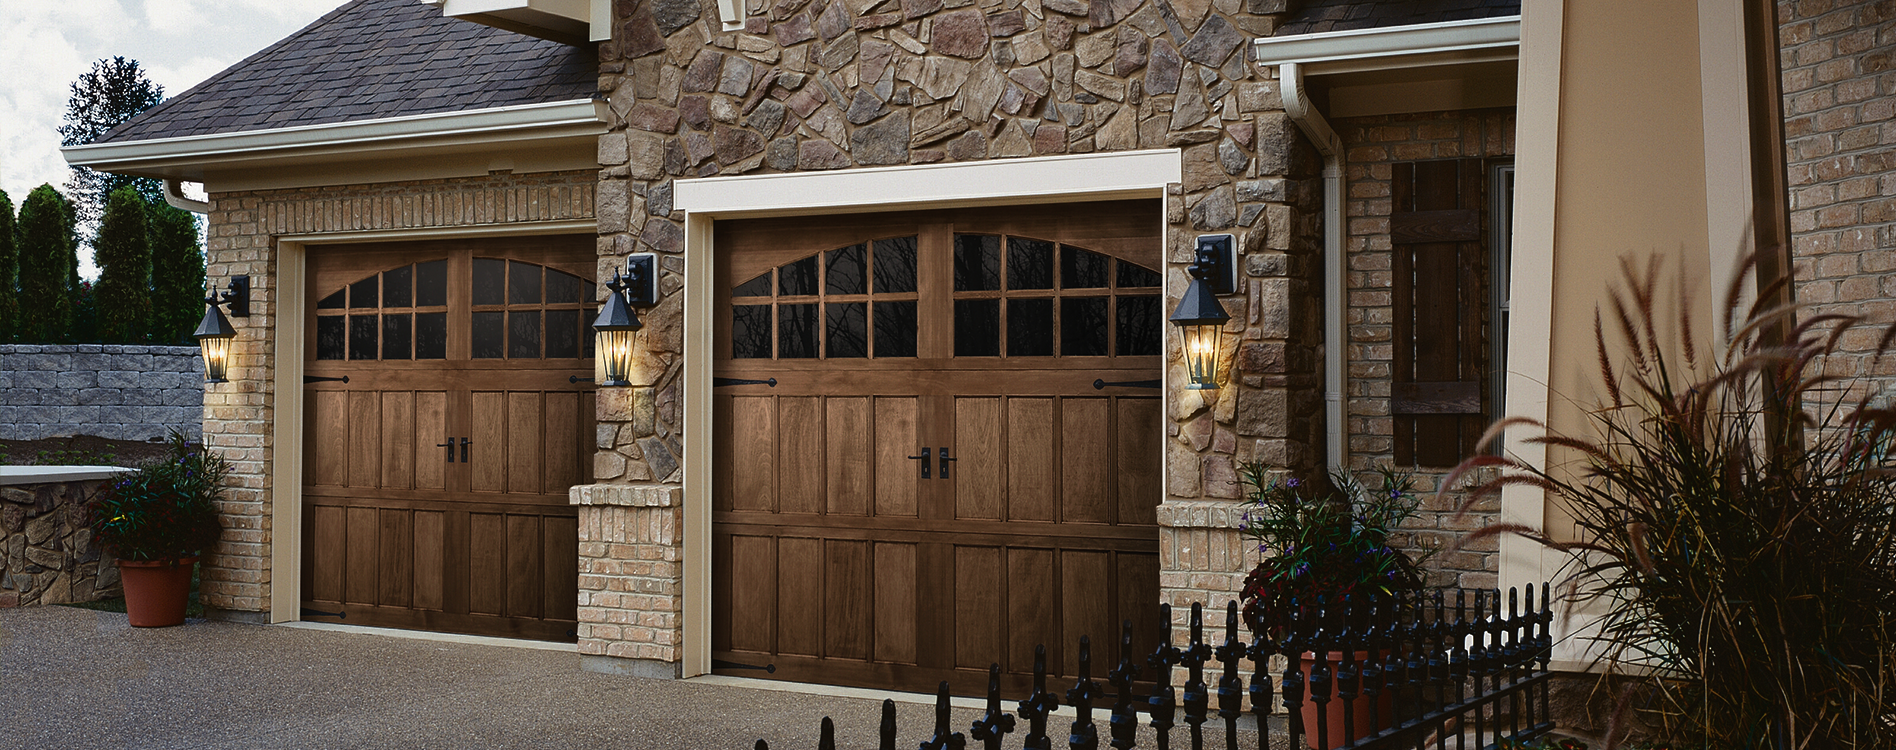 Sale new garage door in lilburn ga a team garage door for New garage